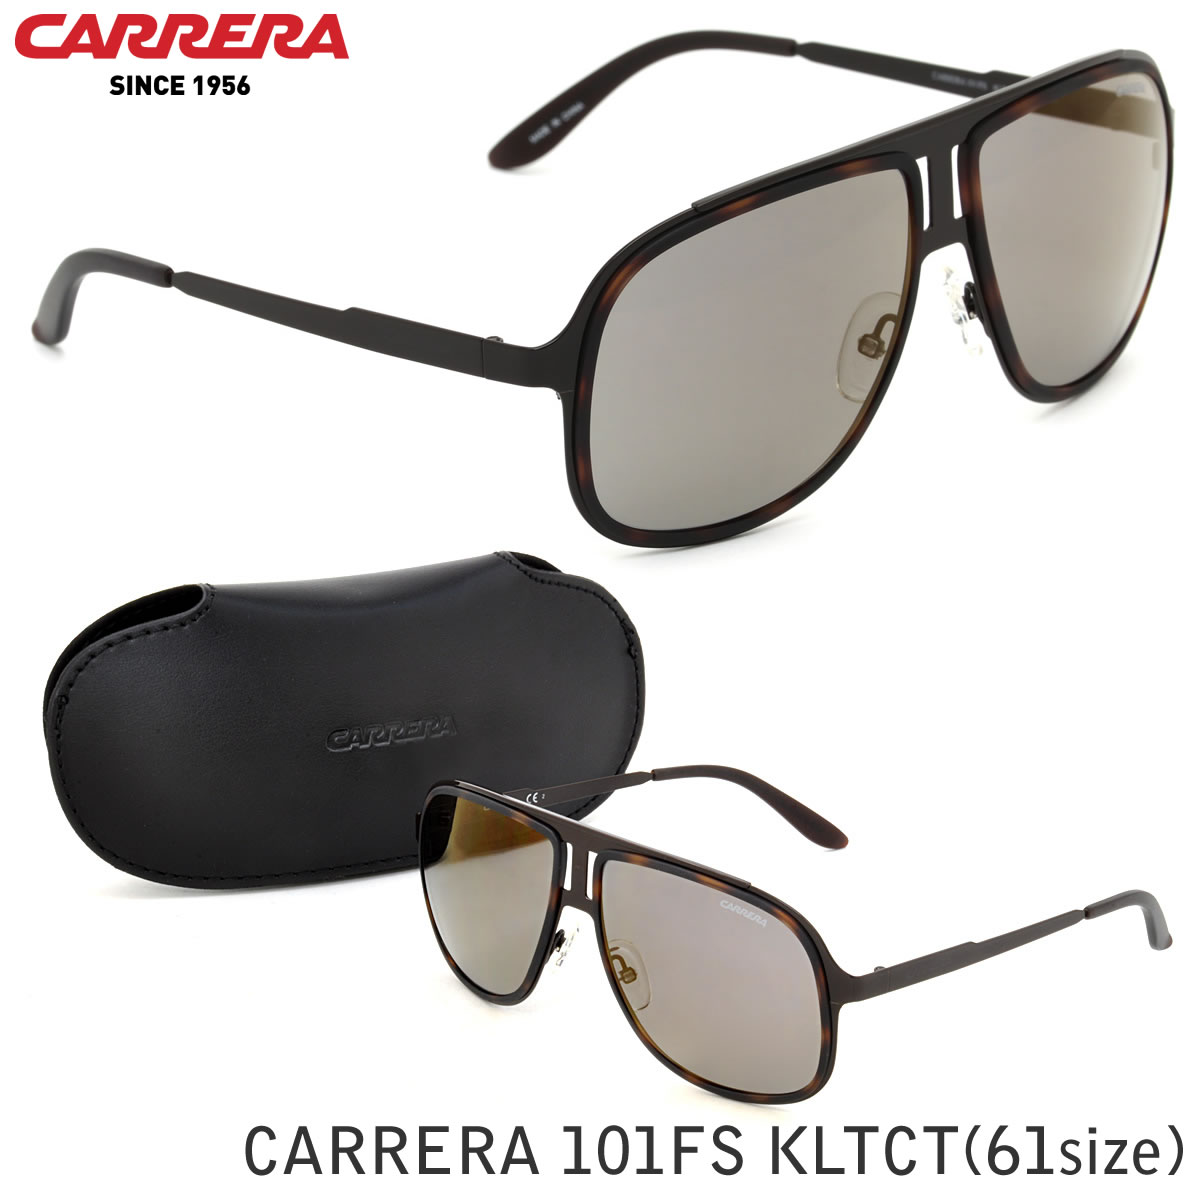 b0683d1706d1 Optical Shop Thats: A large reduction in price! (Carrera) sunglasses ...